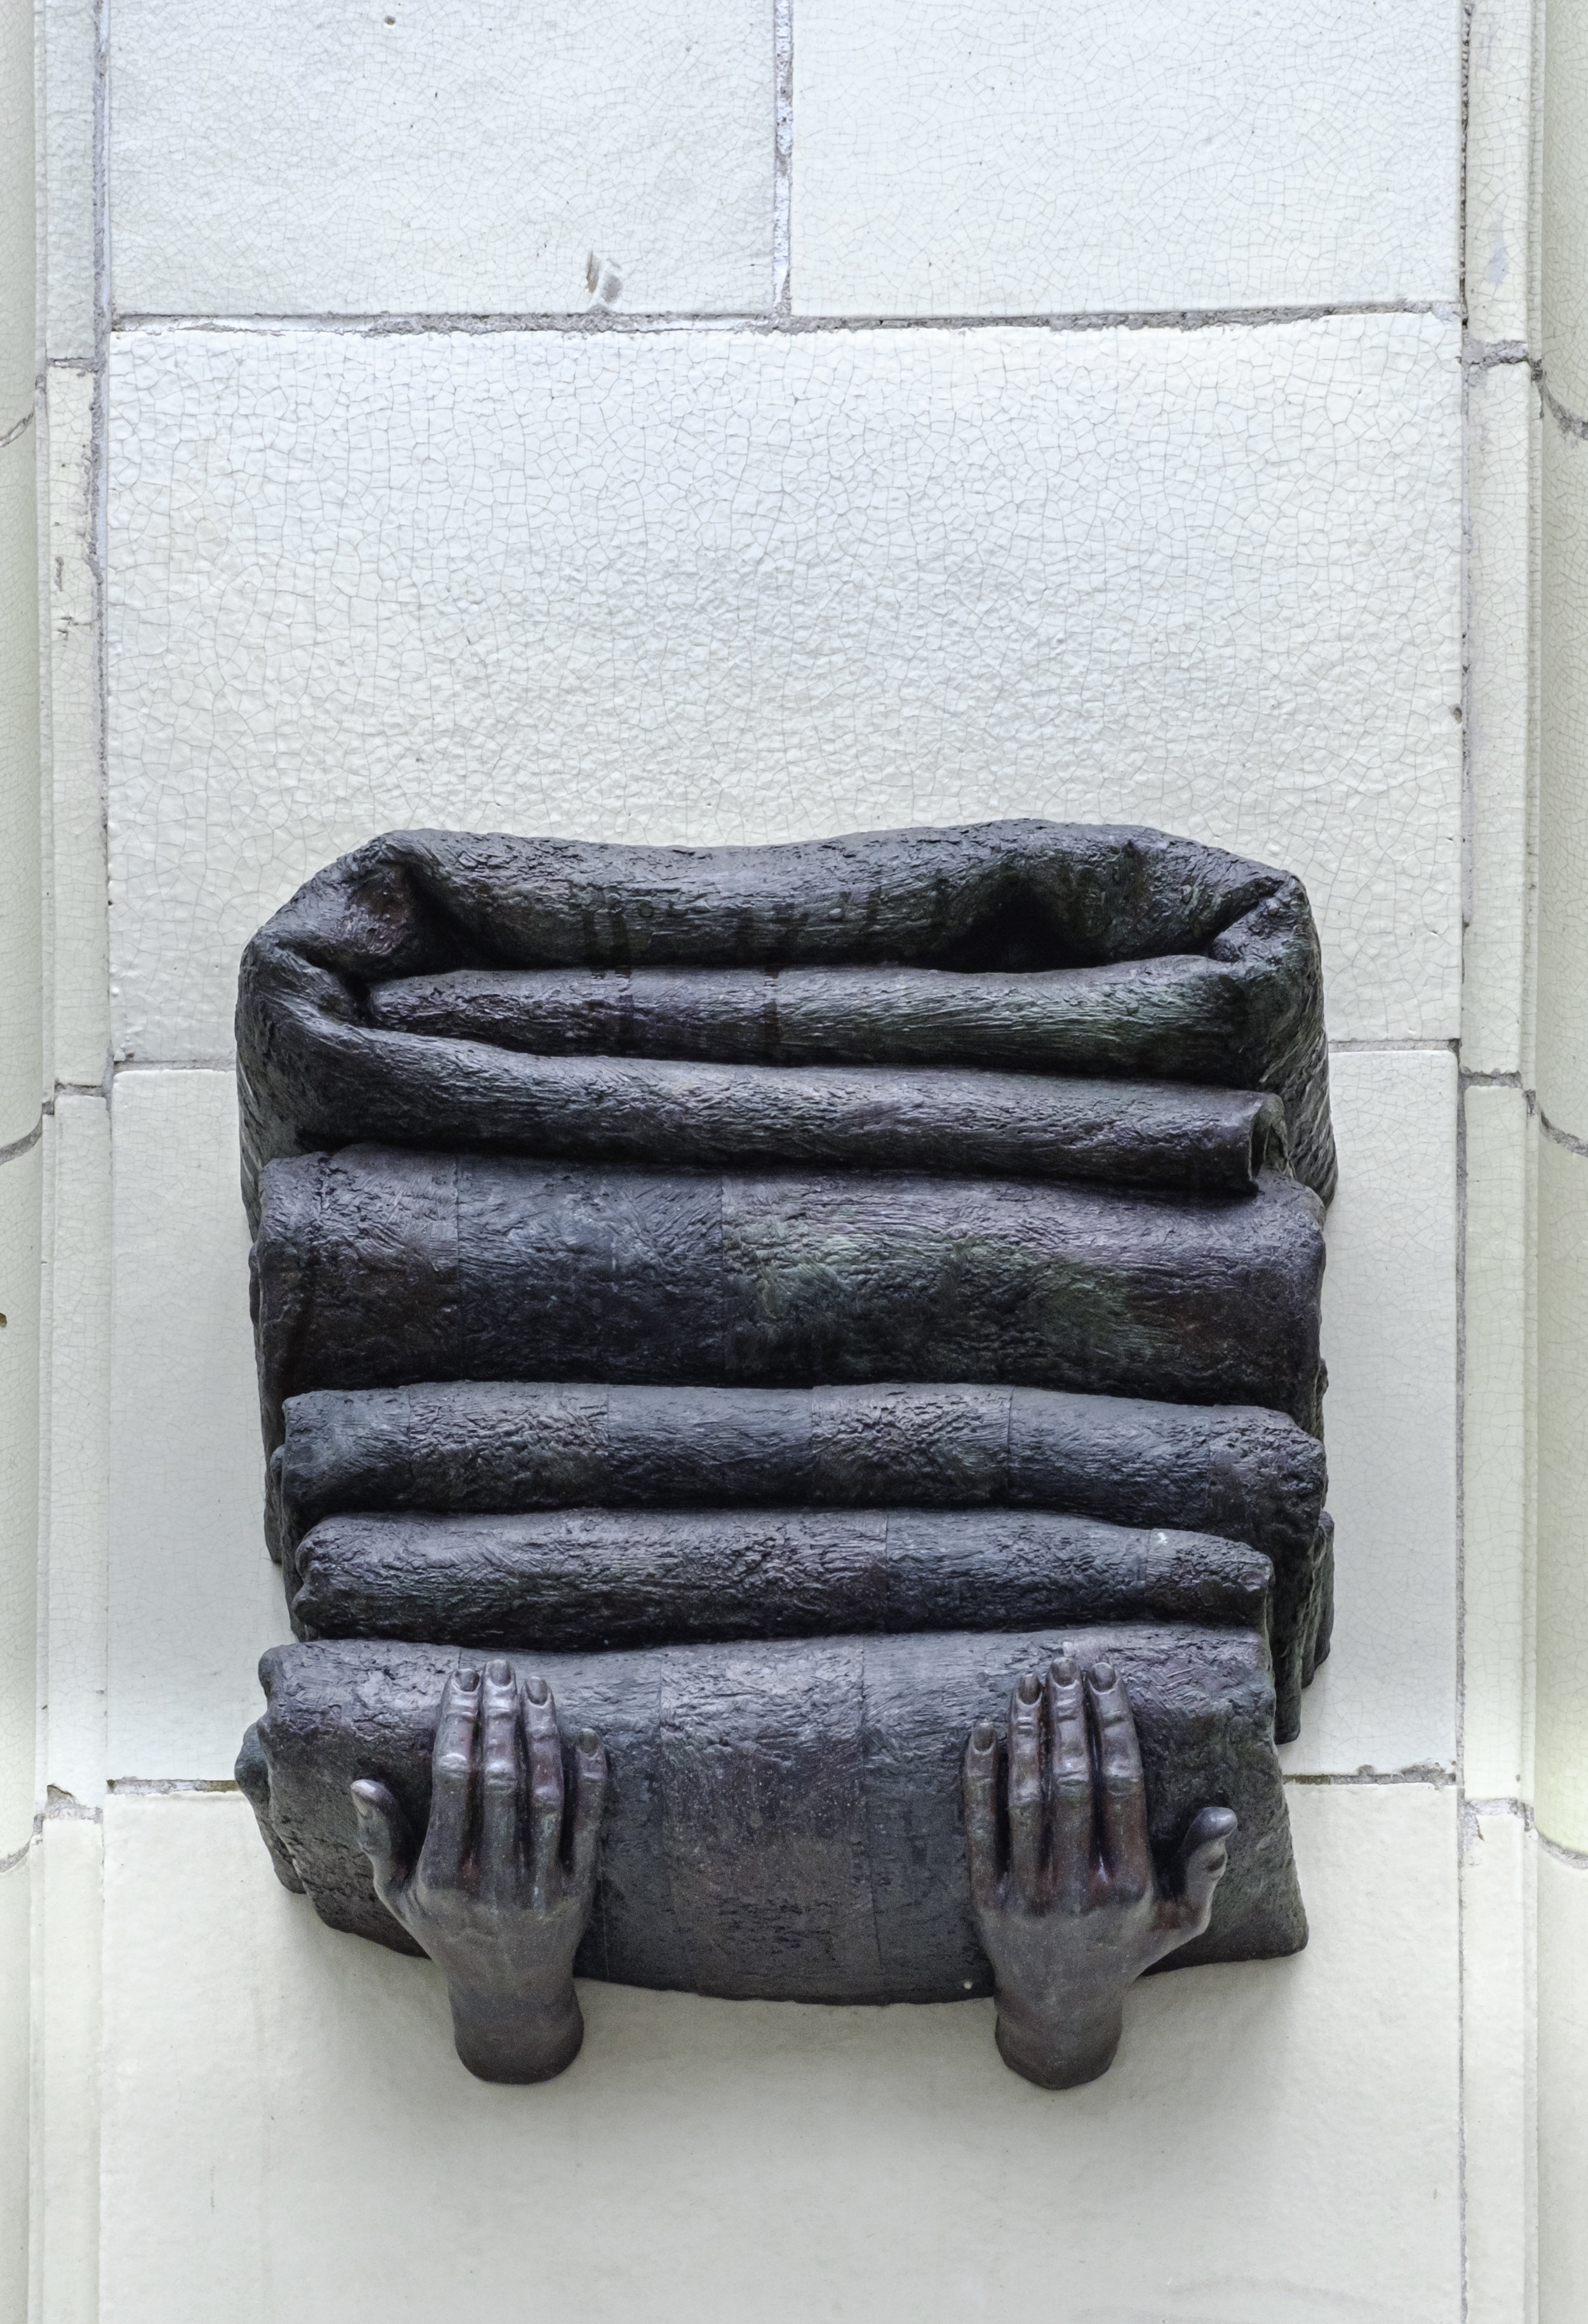 A bronze sculpture of hands holding a tall stack of folded blankets. This piece is by artist Crystal Przybille and is part of the  Hands of Time  series.